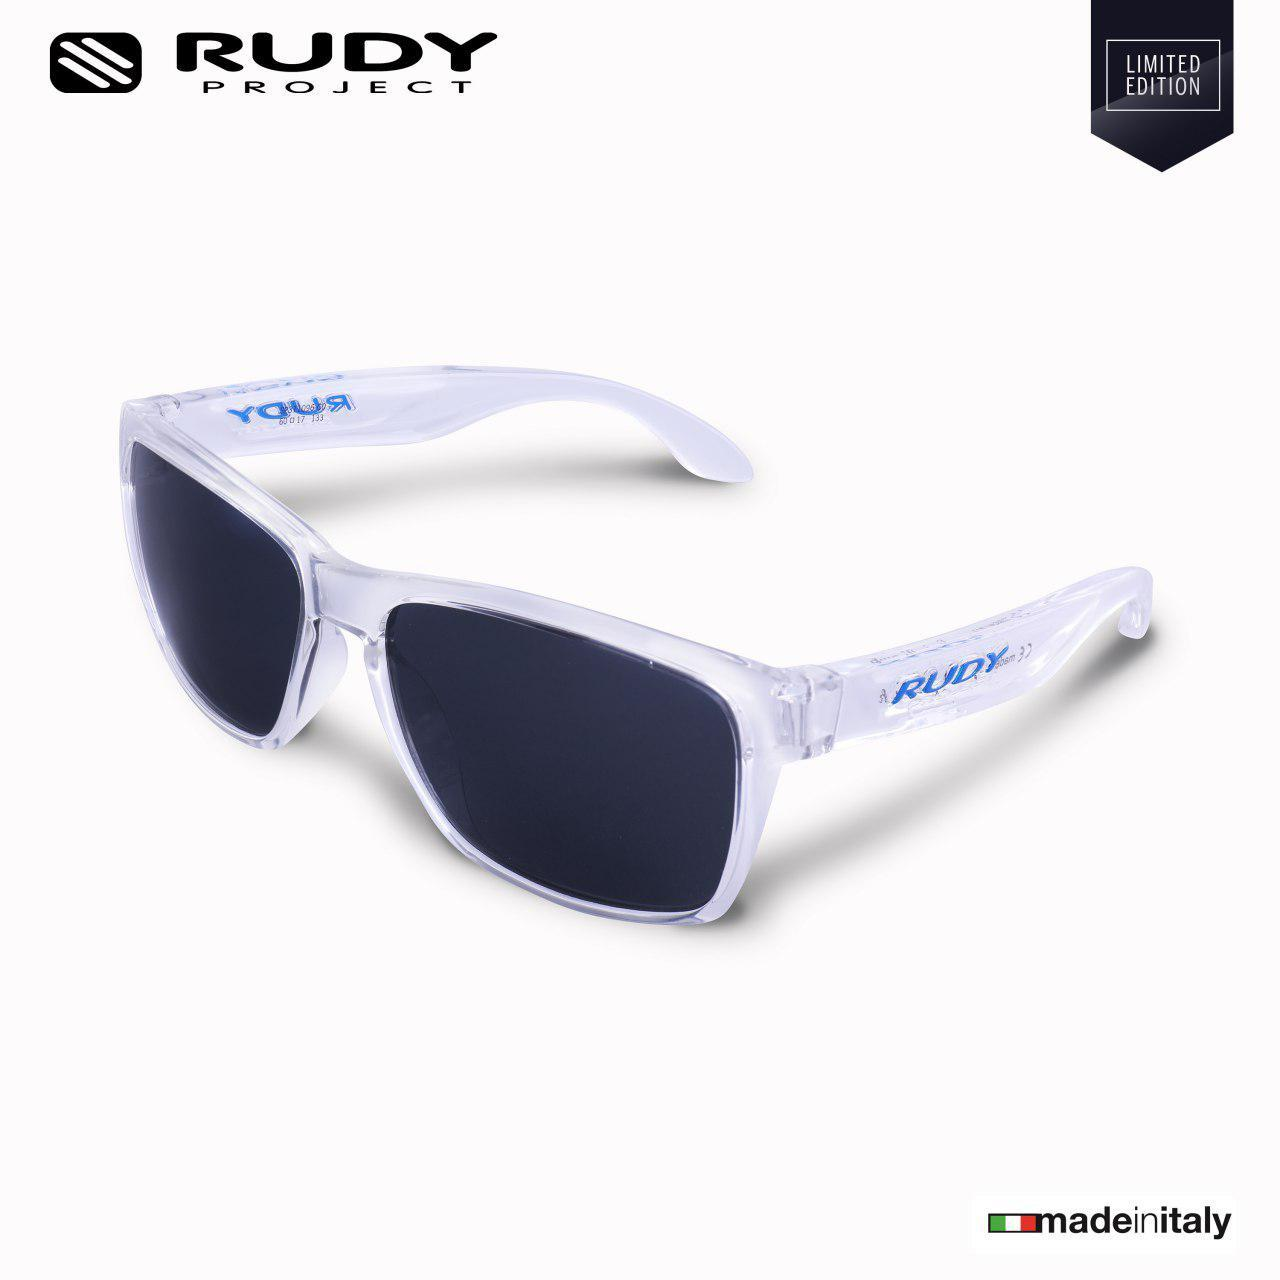 c02b28a4230 Rudy Project Spinhawk Lifestyle Eyewear in Crystal Smoke Lenses  SP311096-0000 (Size 60